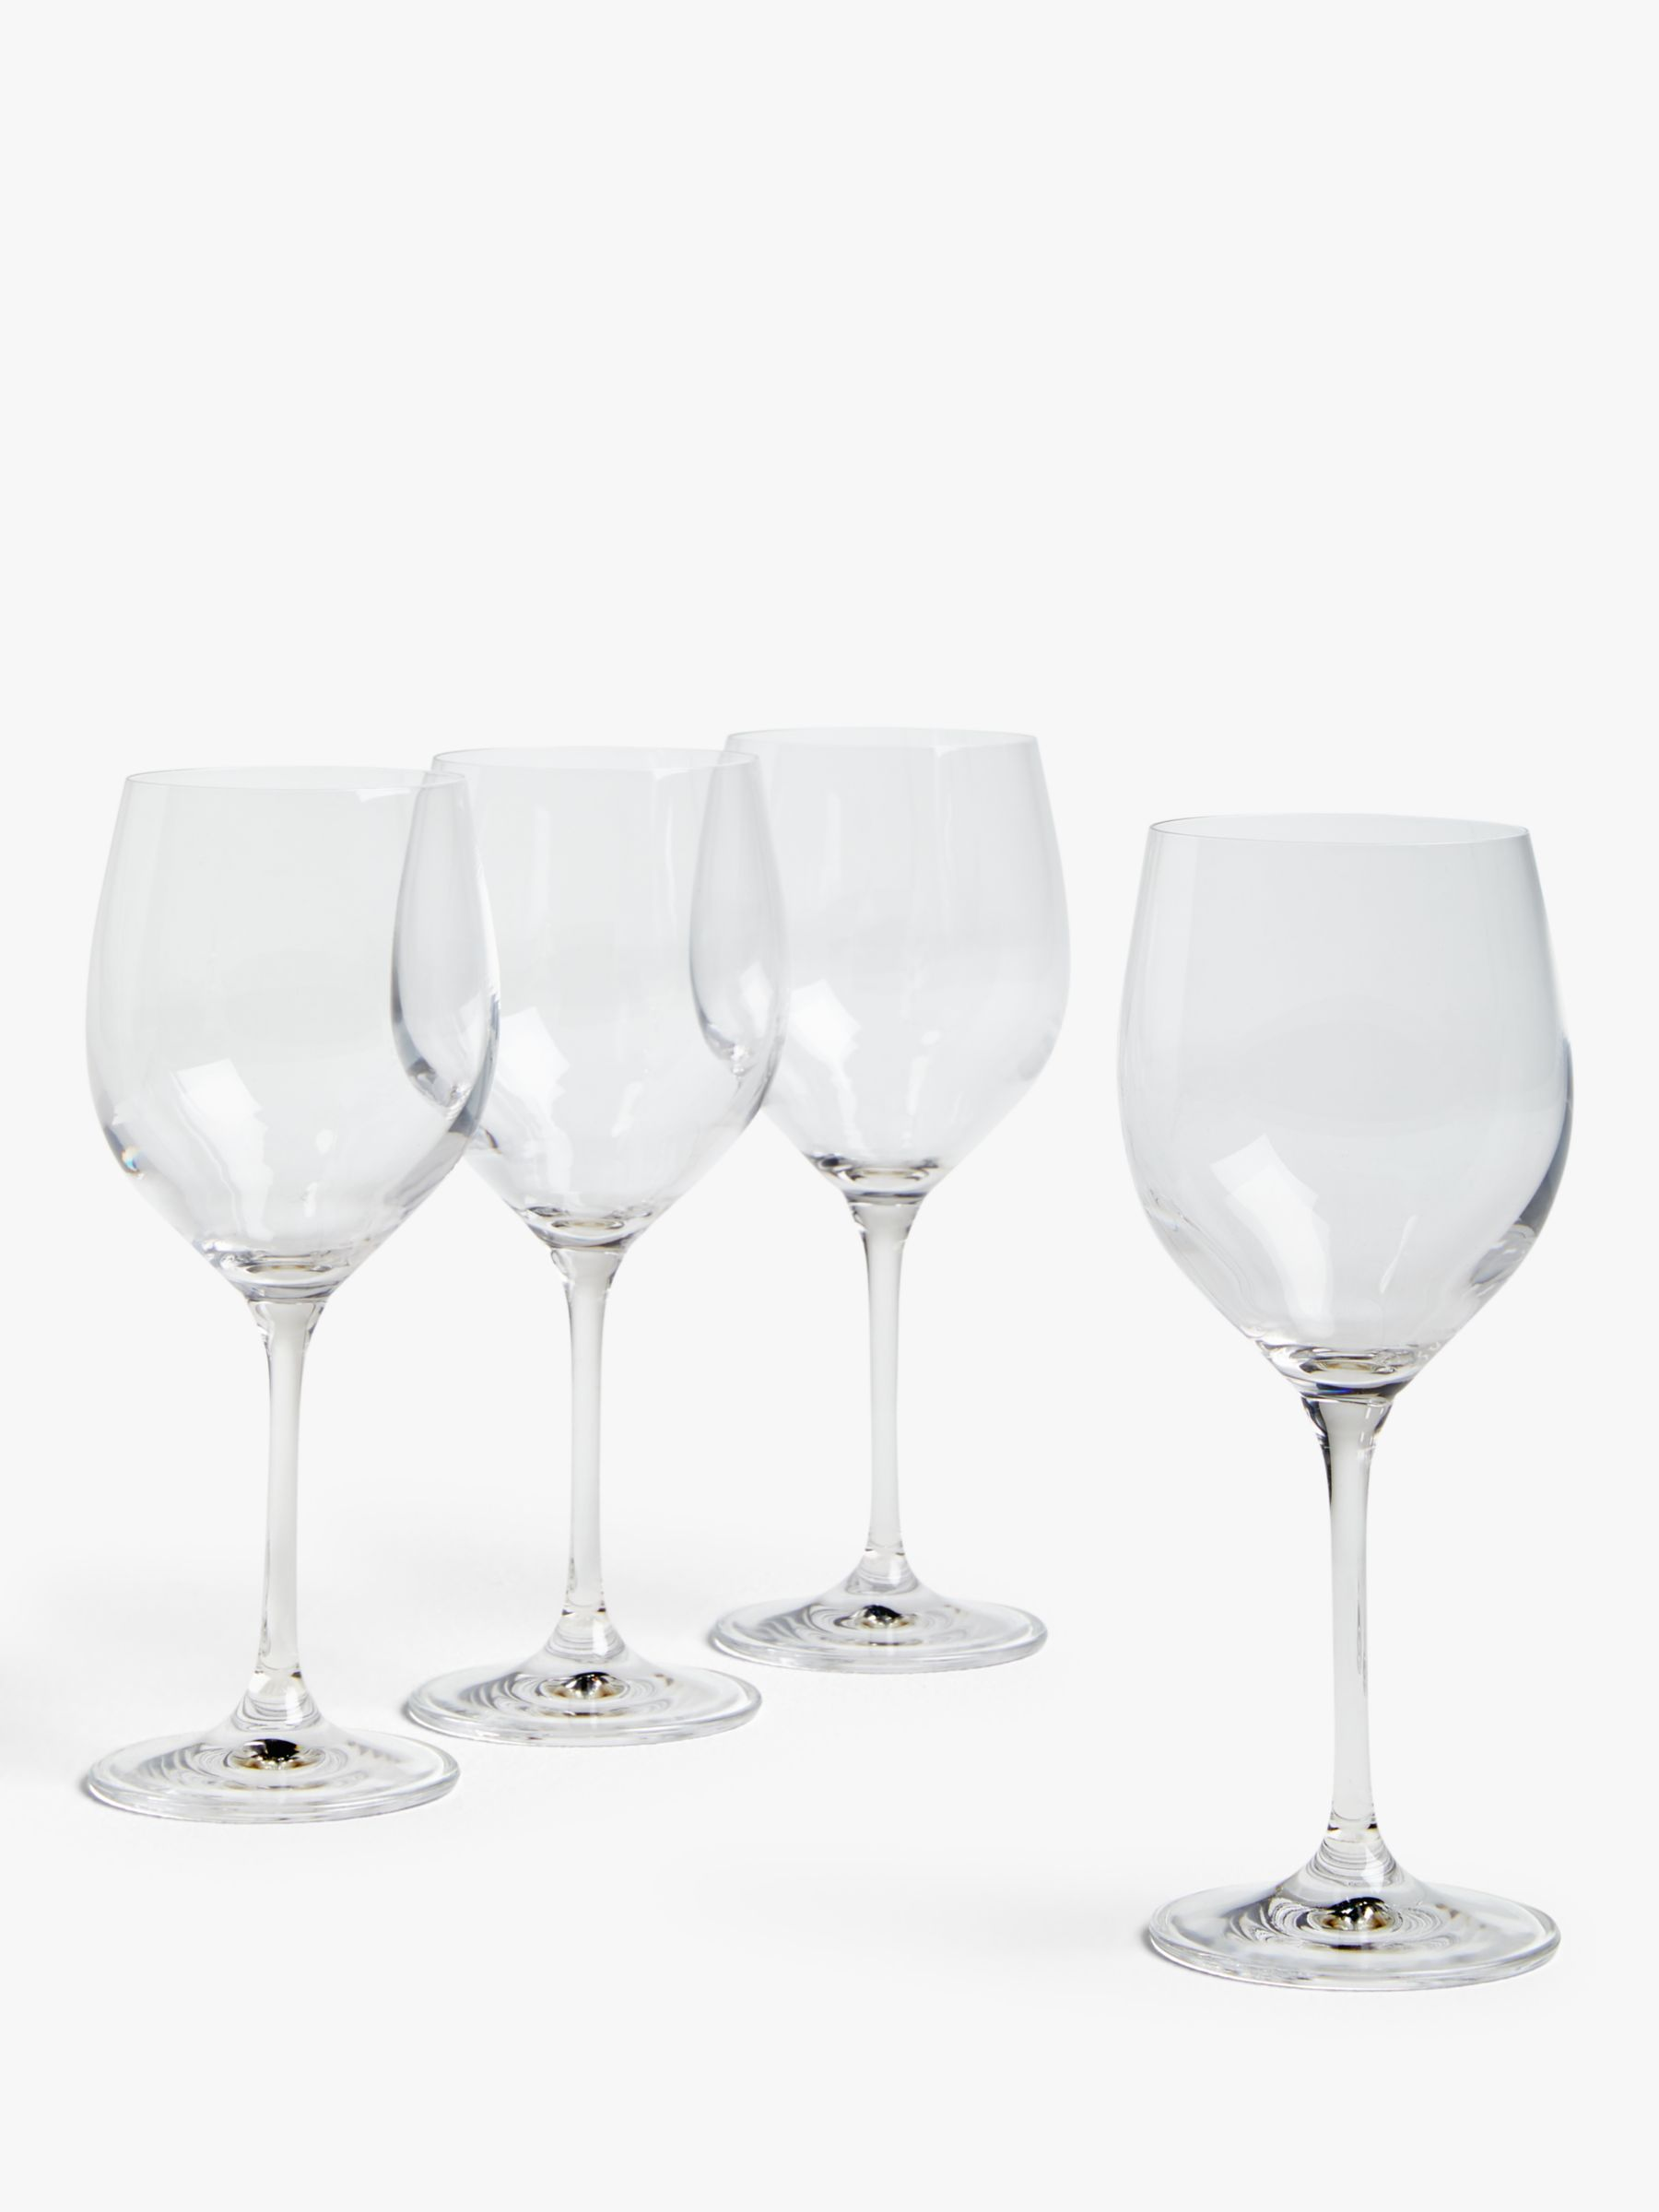 House by John Lewis House by John Lewis Drink White Wine Glasses, Set of 4, 380ml